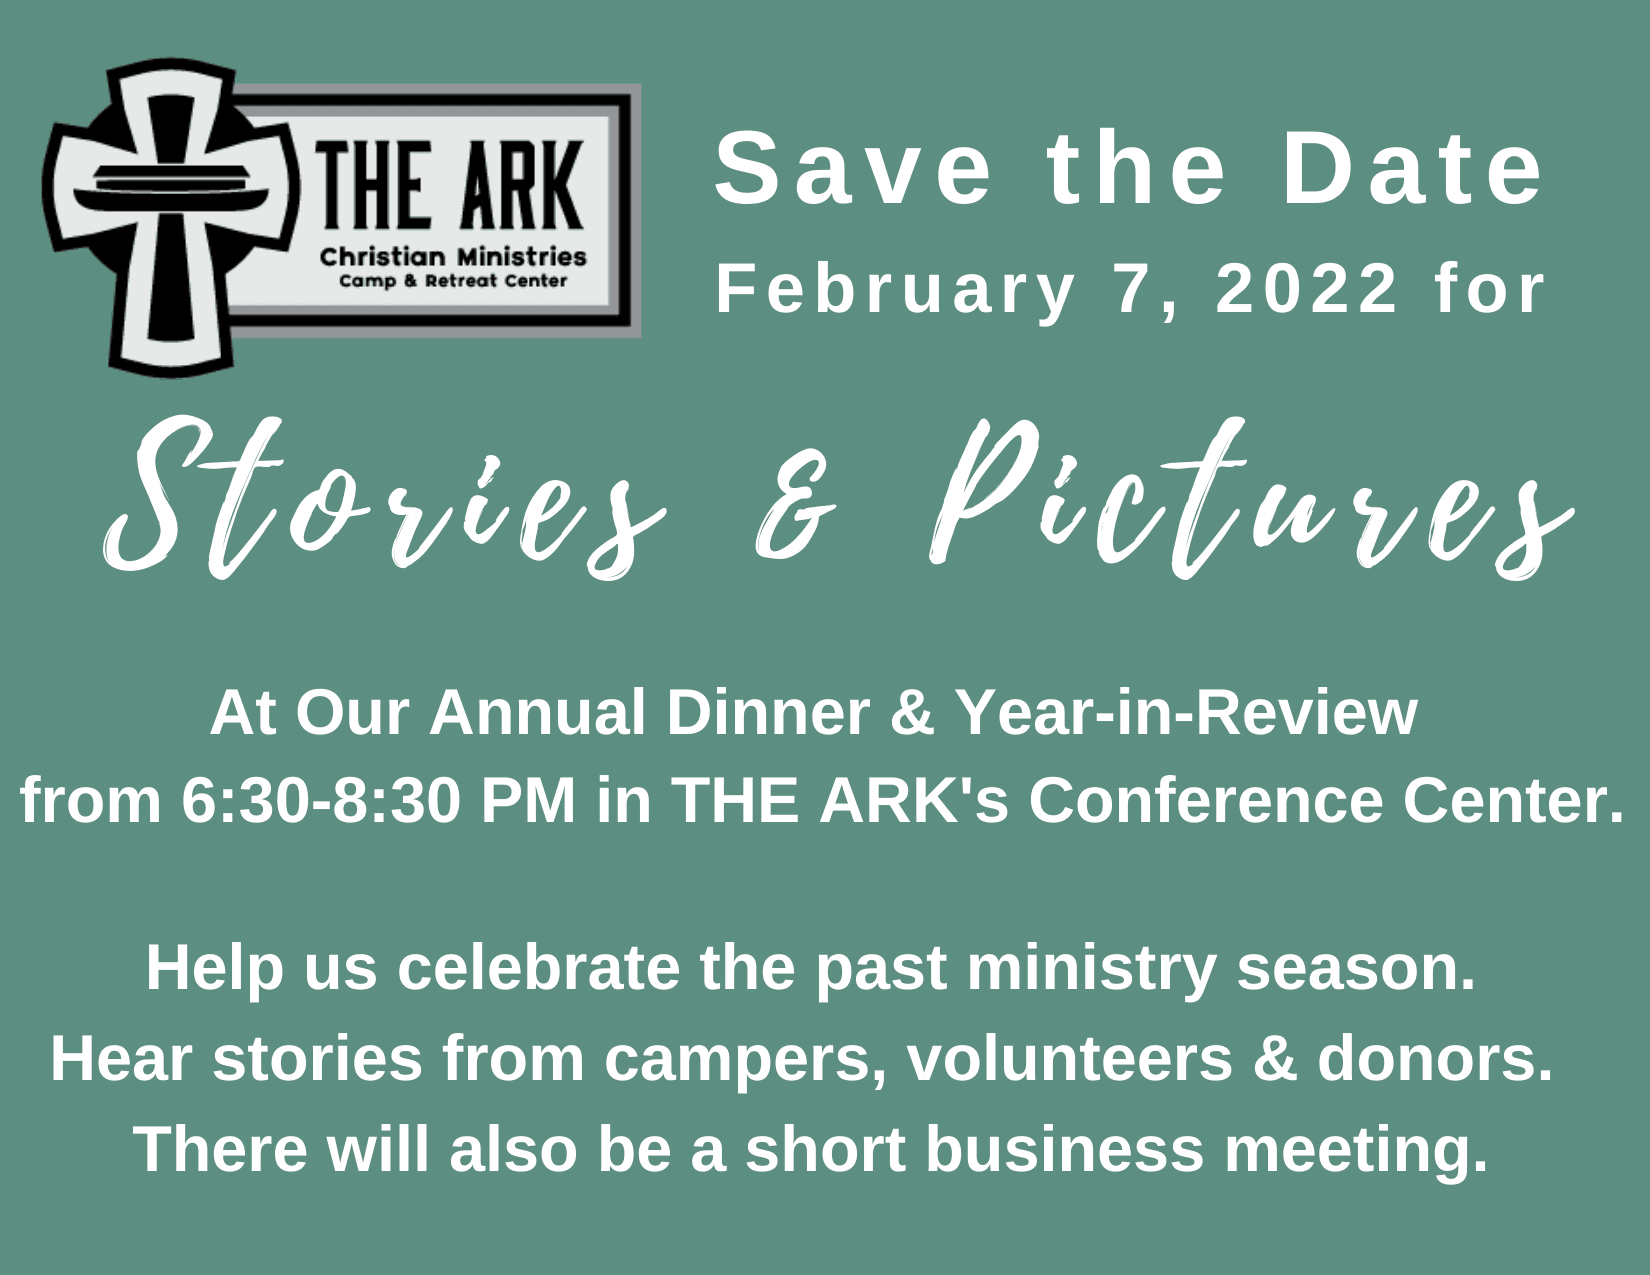 2022 Annual Dinner & Year-in-Review Save the Date